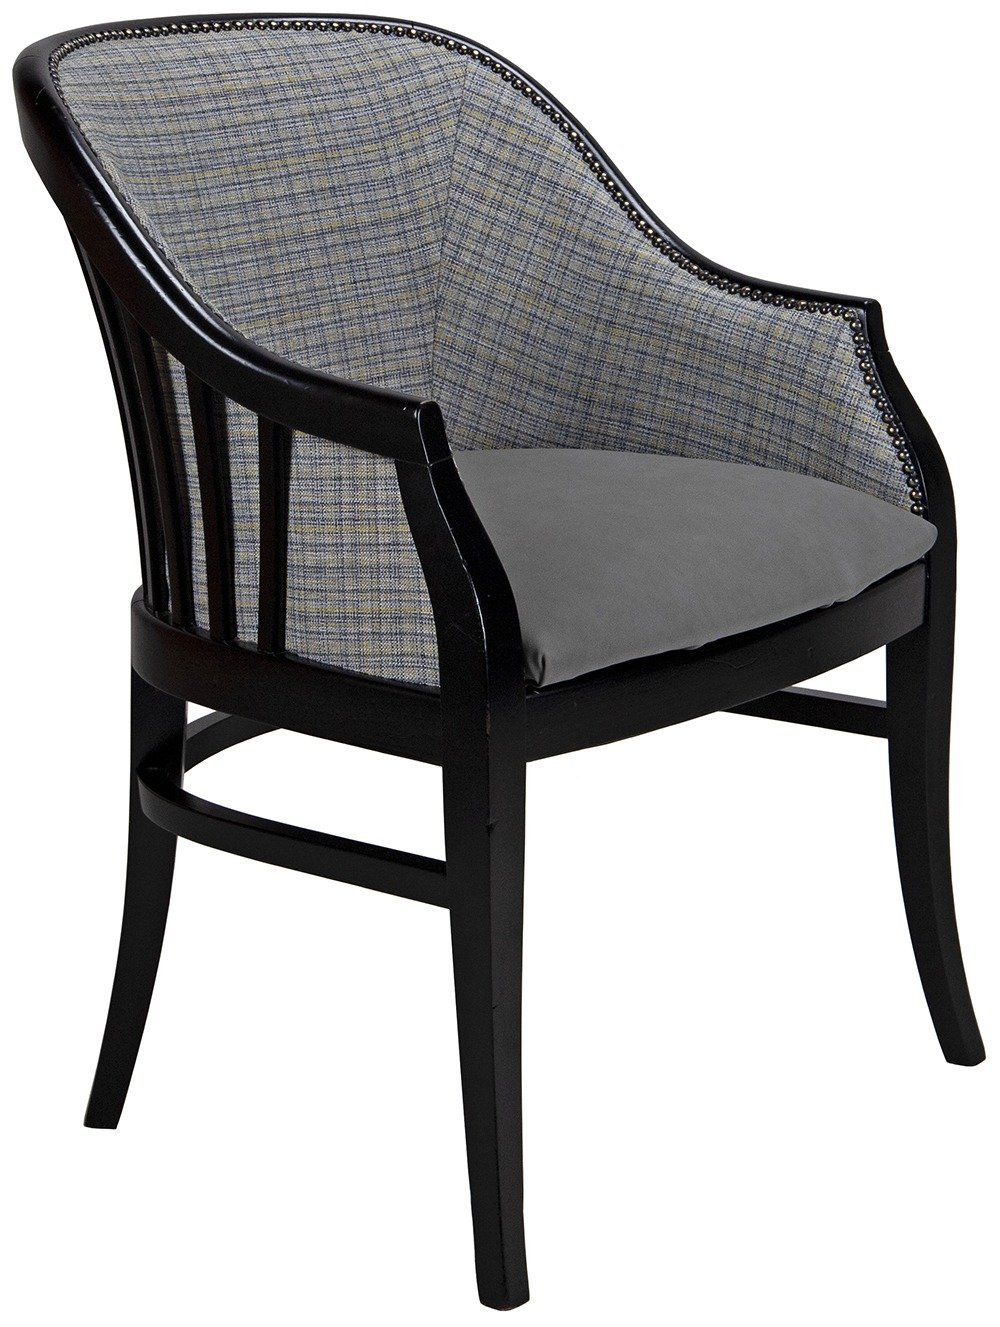 Washington Arm Chair from a 45 degree angle